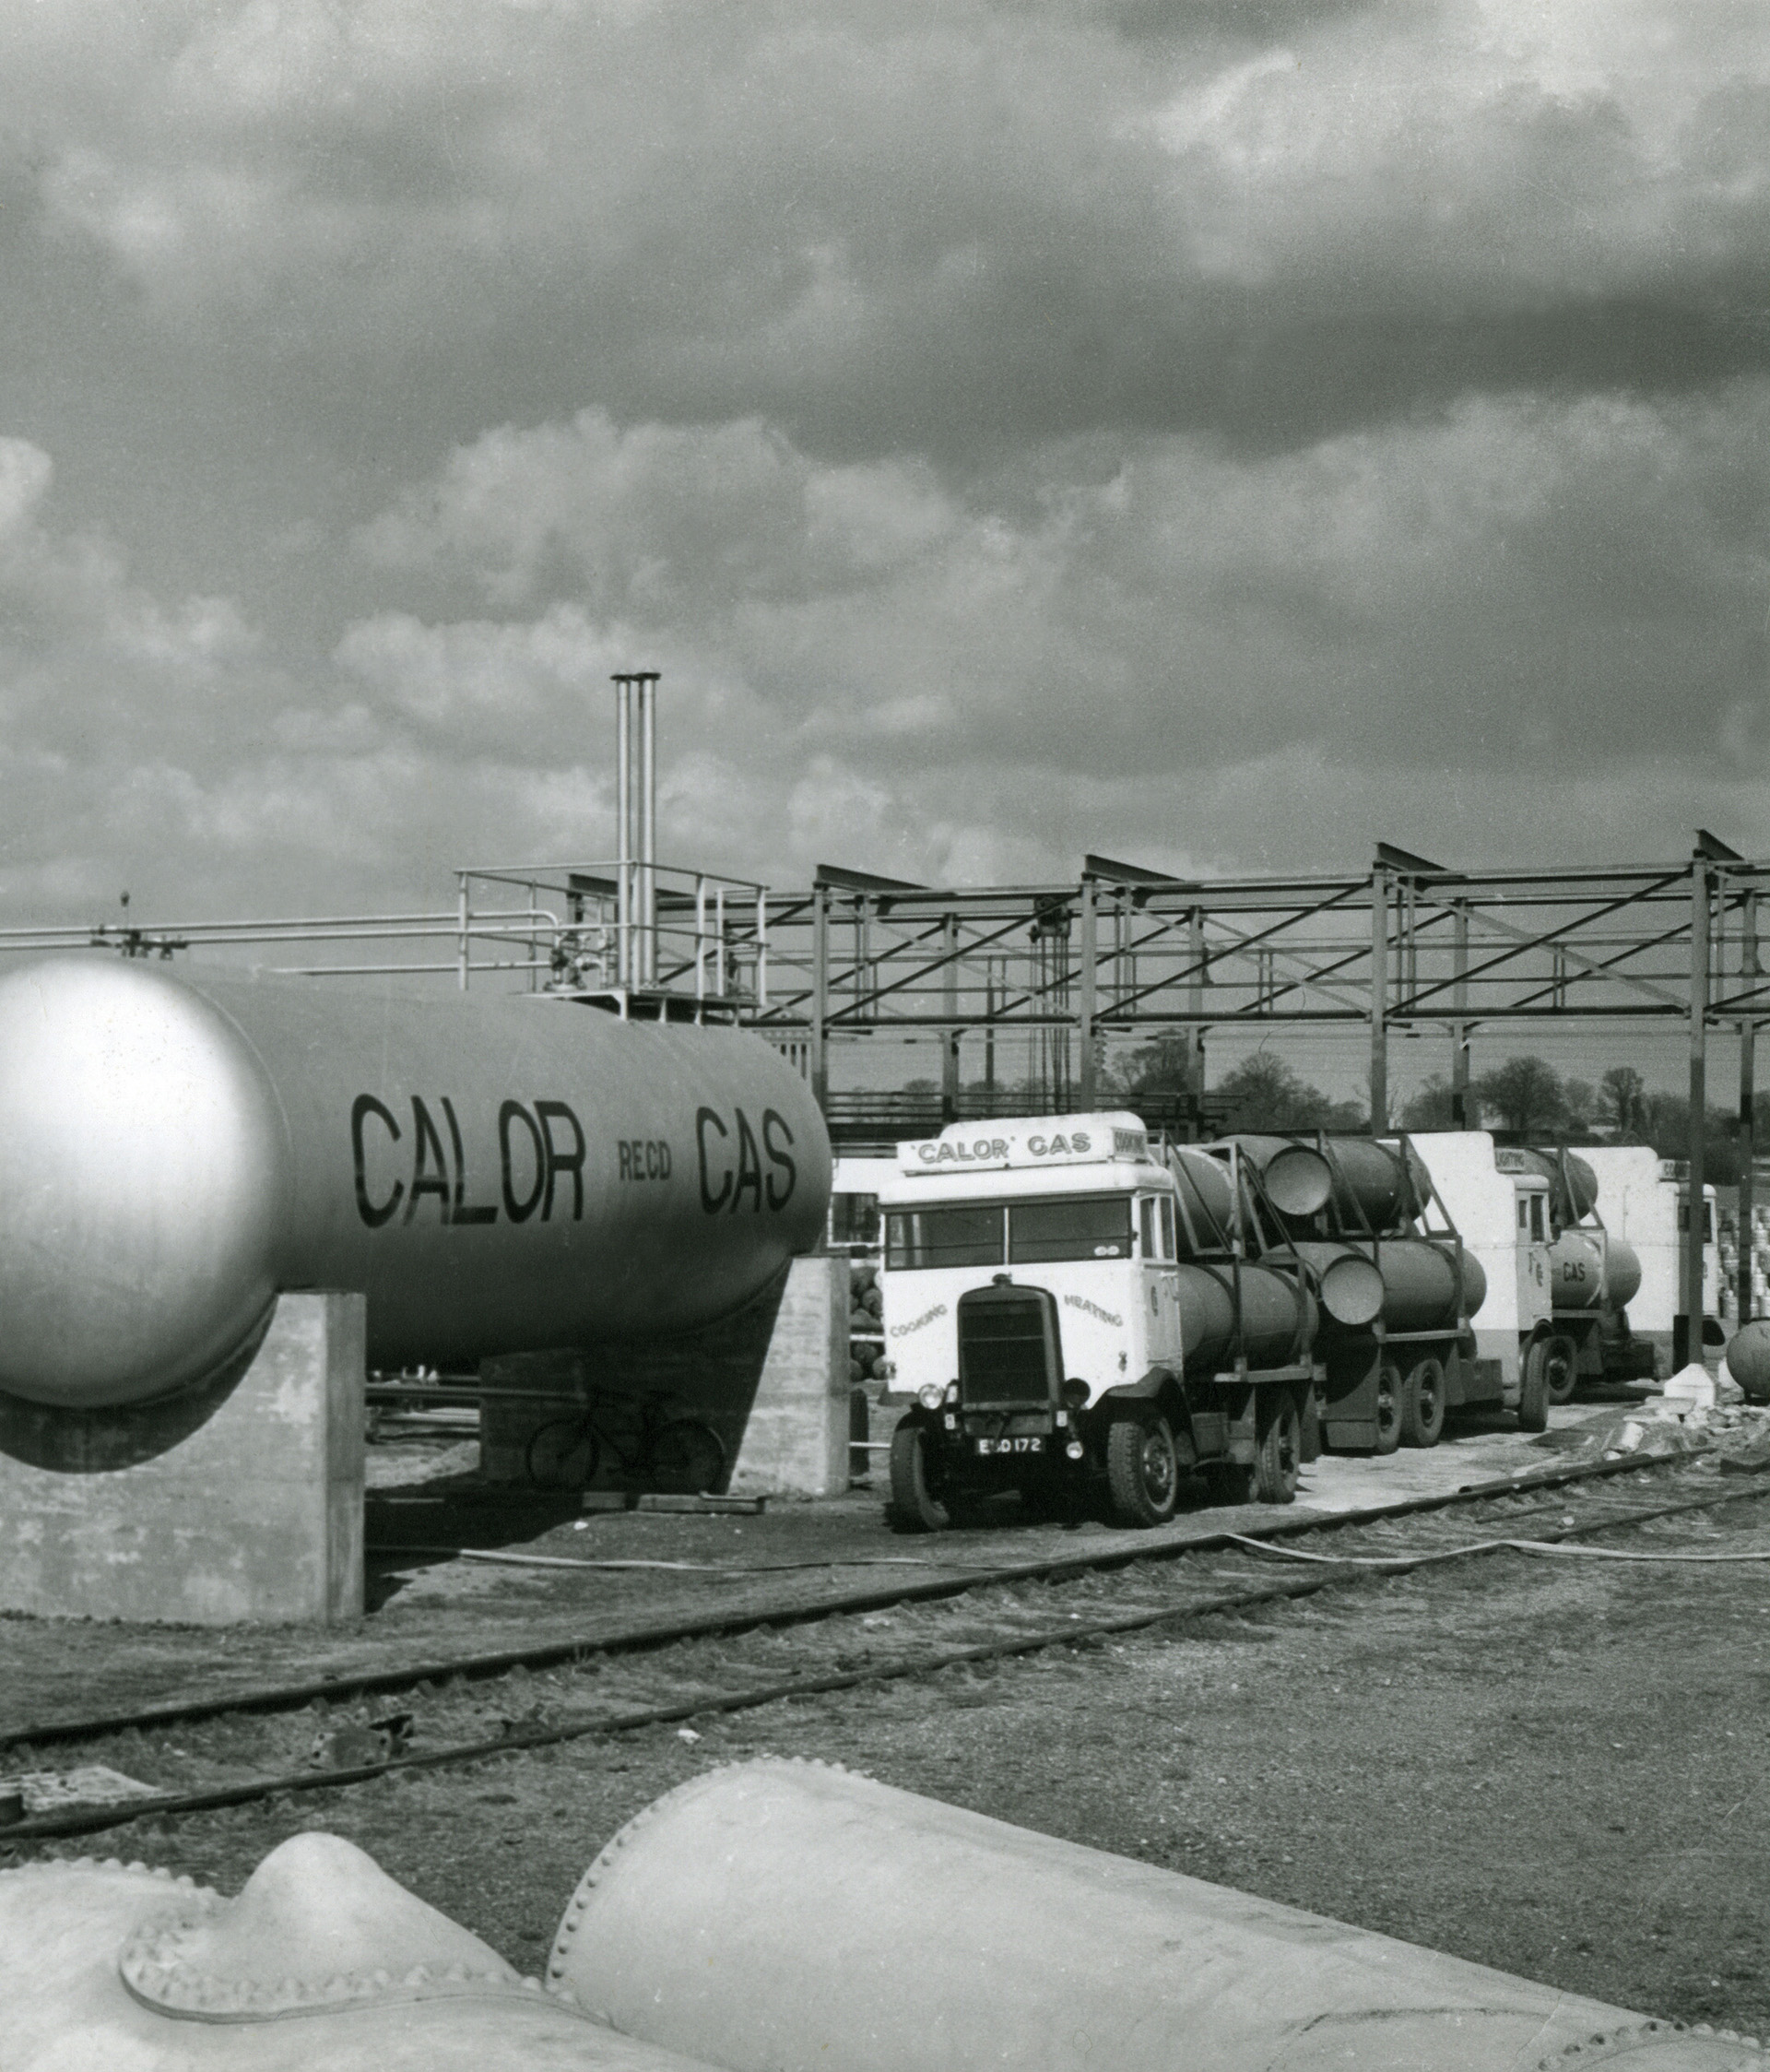 Bulk transport lorries, each with three tanks, discharging gas into storage vessels